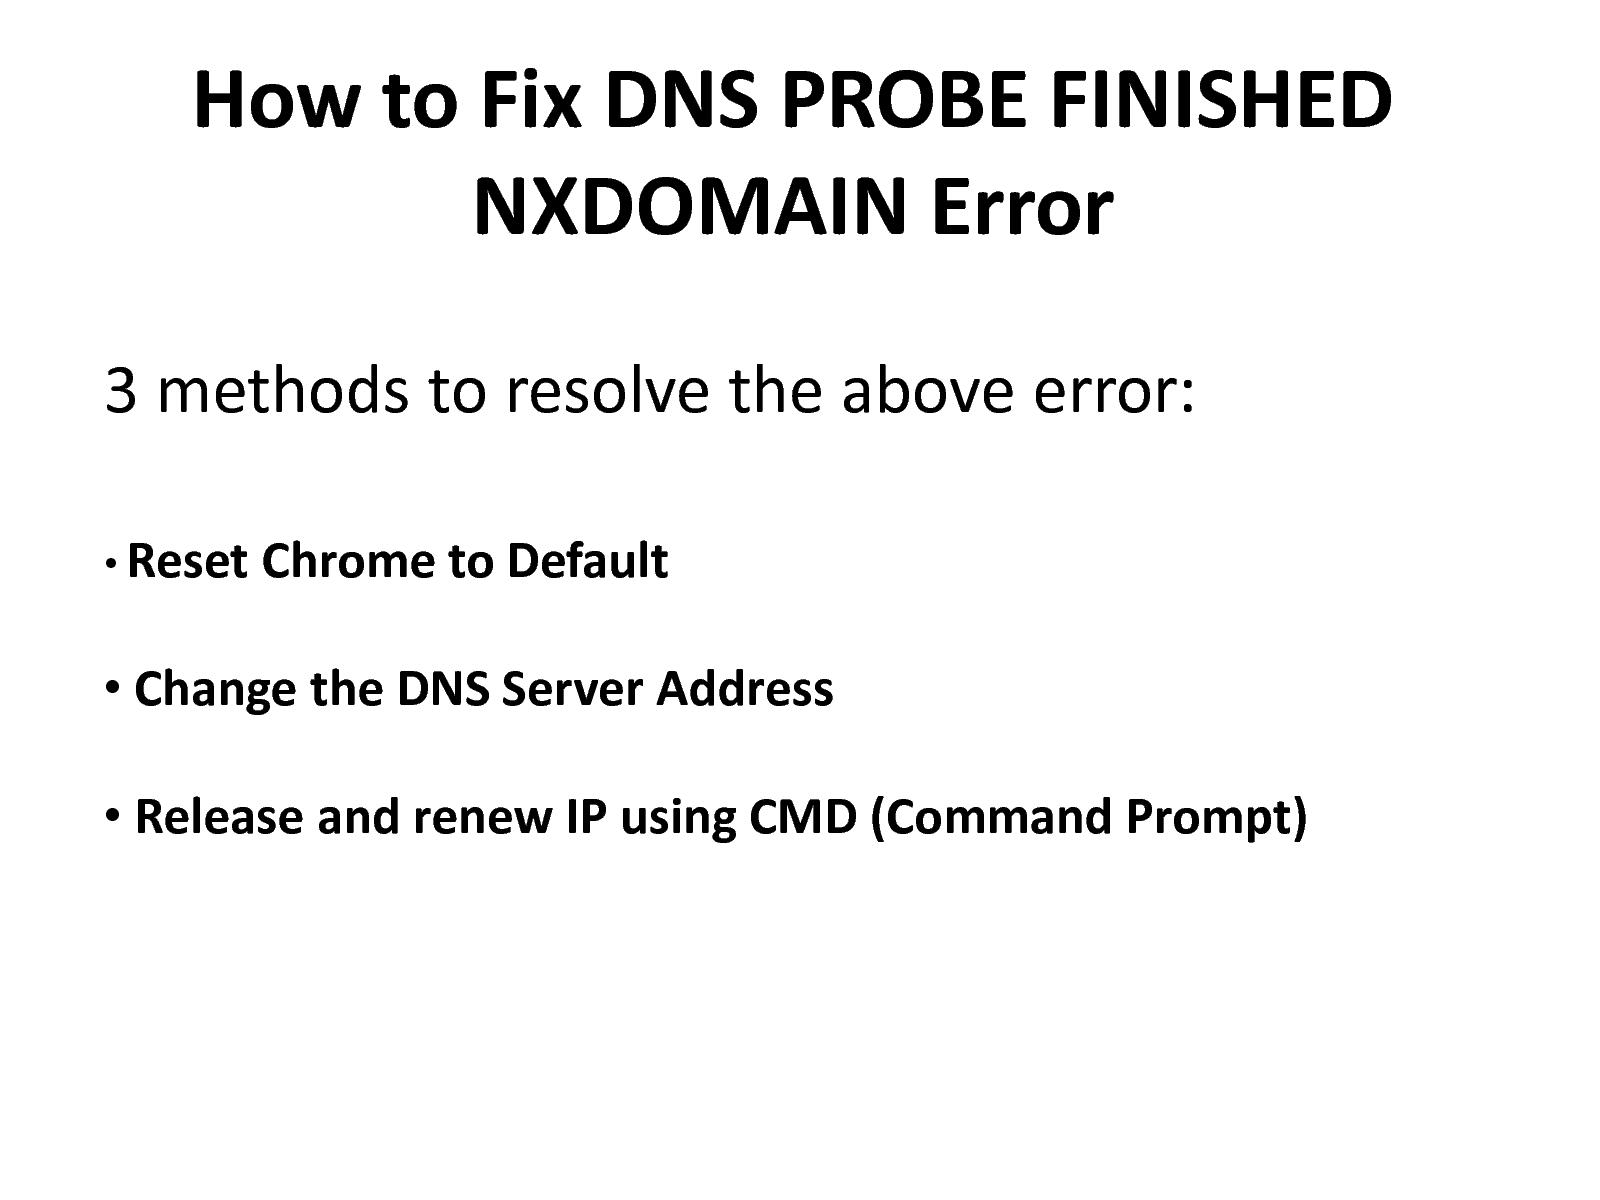 Calaméo - Fix Dns Probe Finished Nxdomain Error